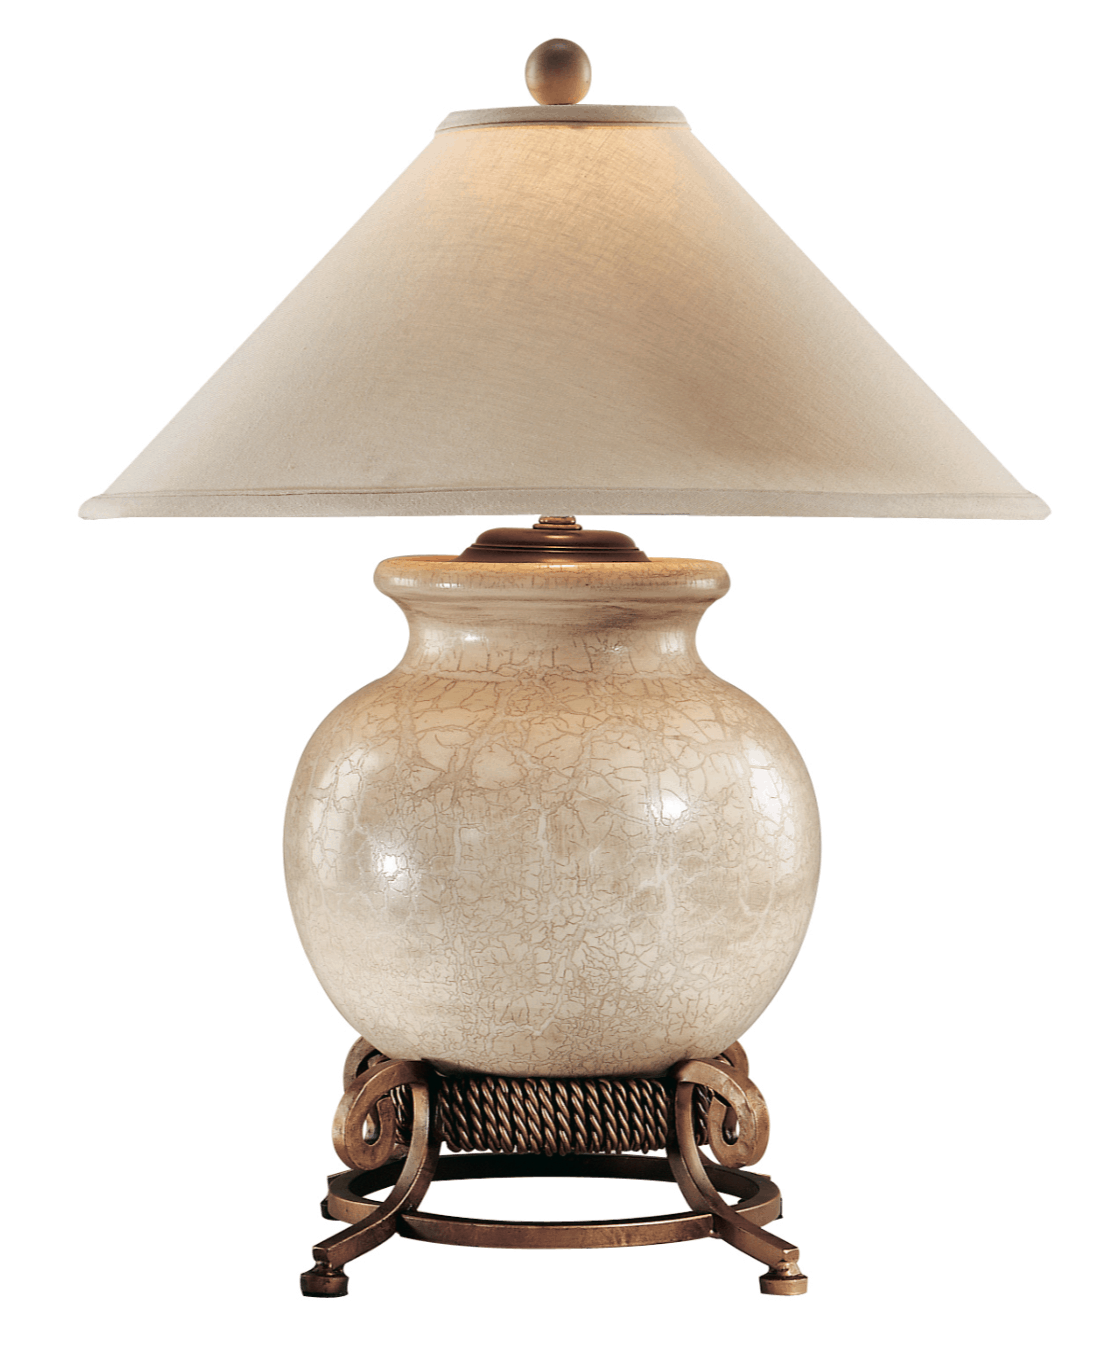 Urn With Stand Porcelain Lamp by Wildwood Lamps 27